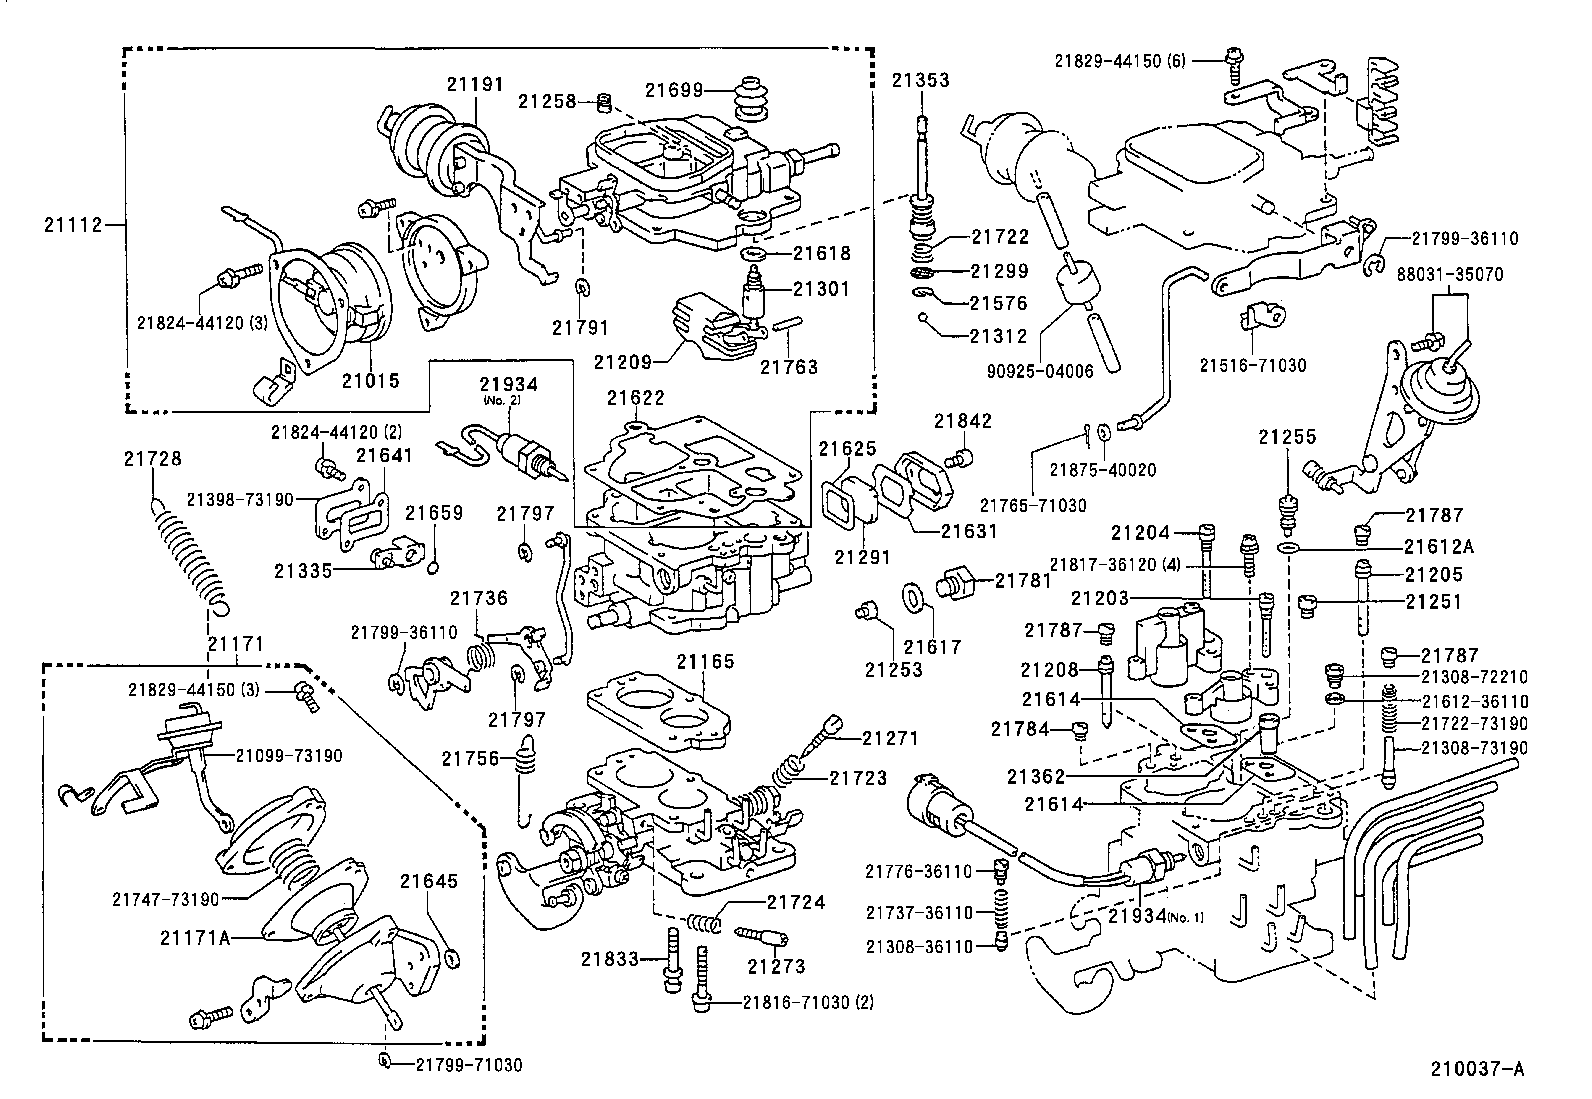 1978 toyota hilux engine diagram